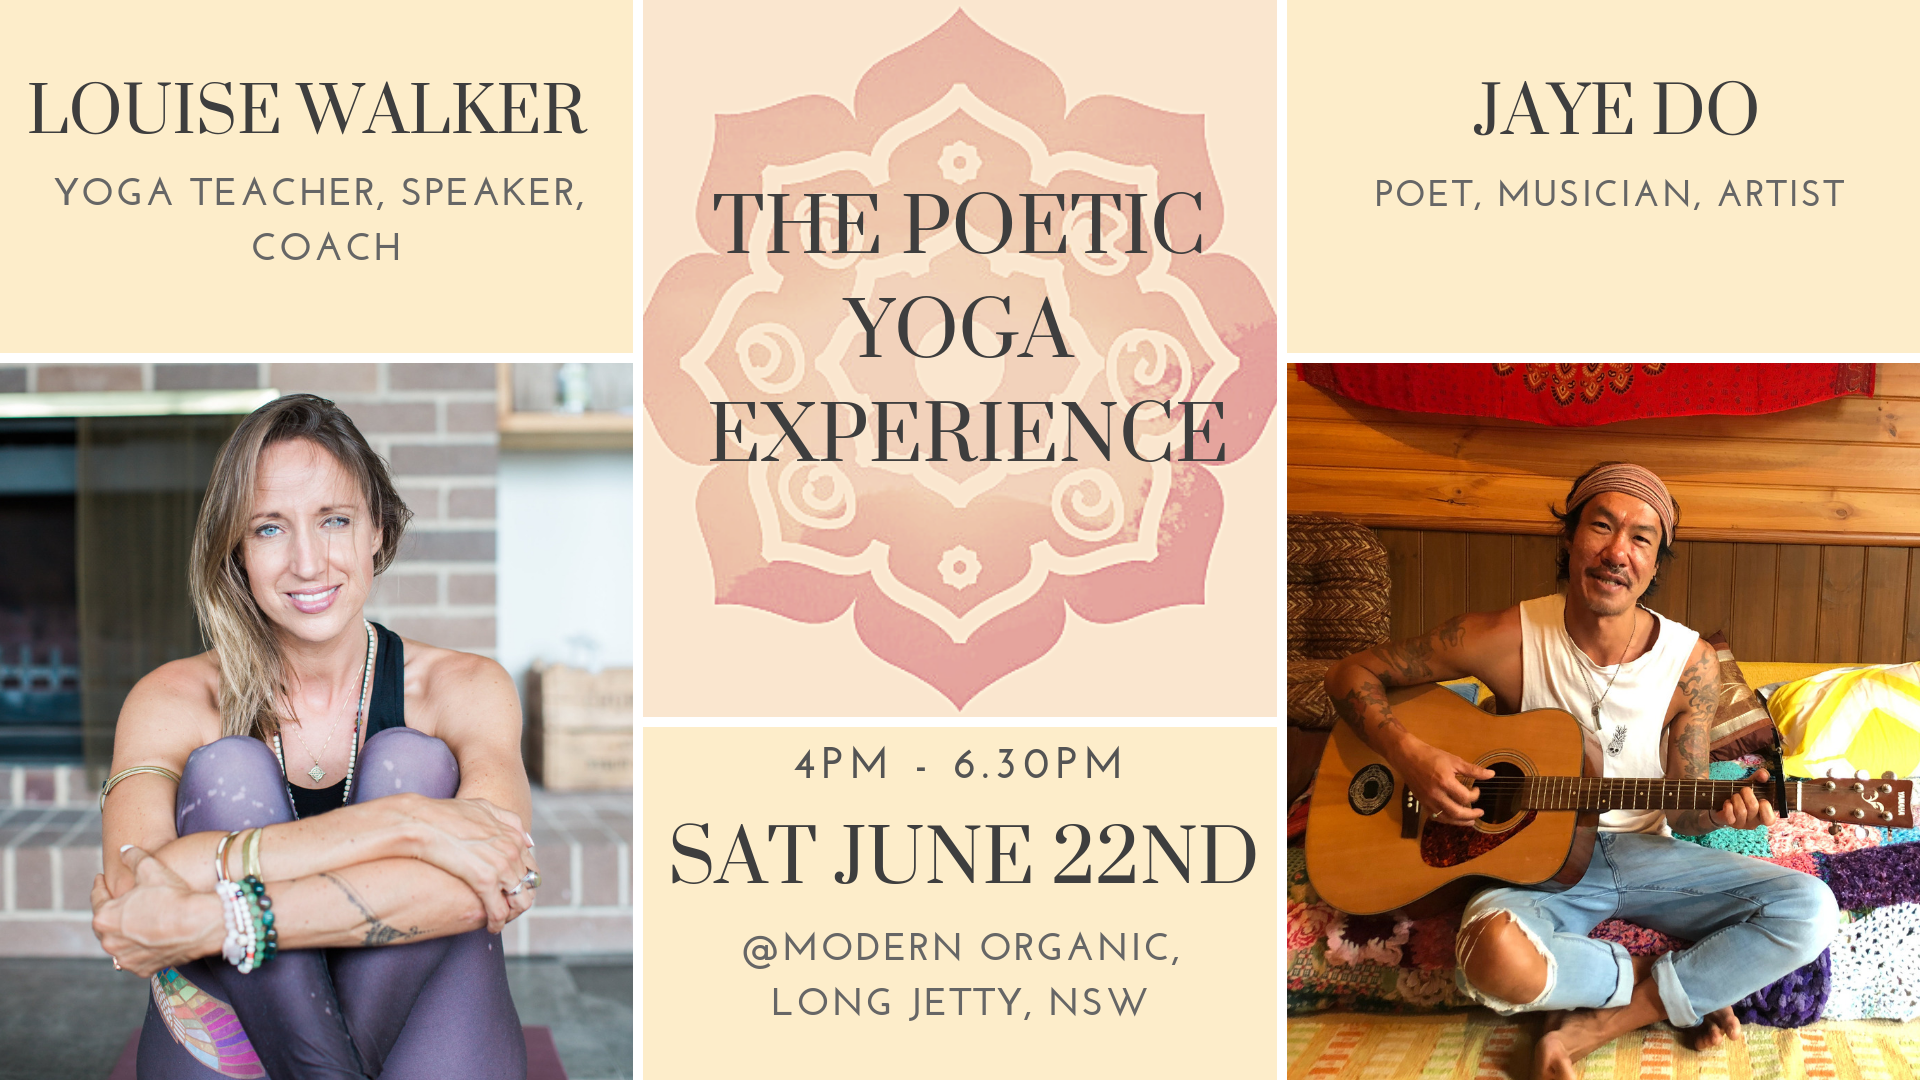 The Poetic Yoga Experience - Event at Modern Organic